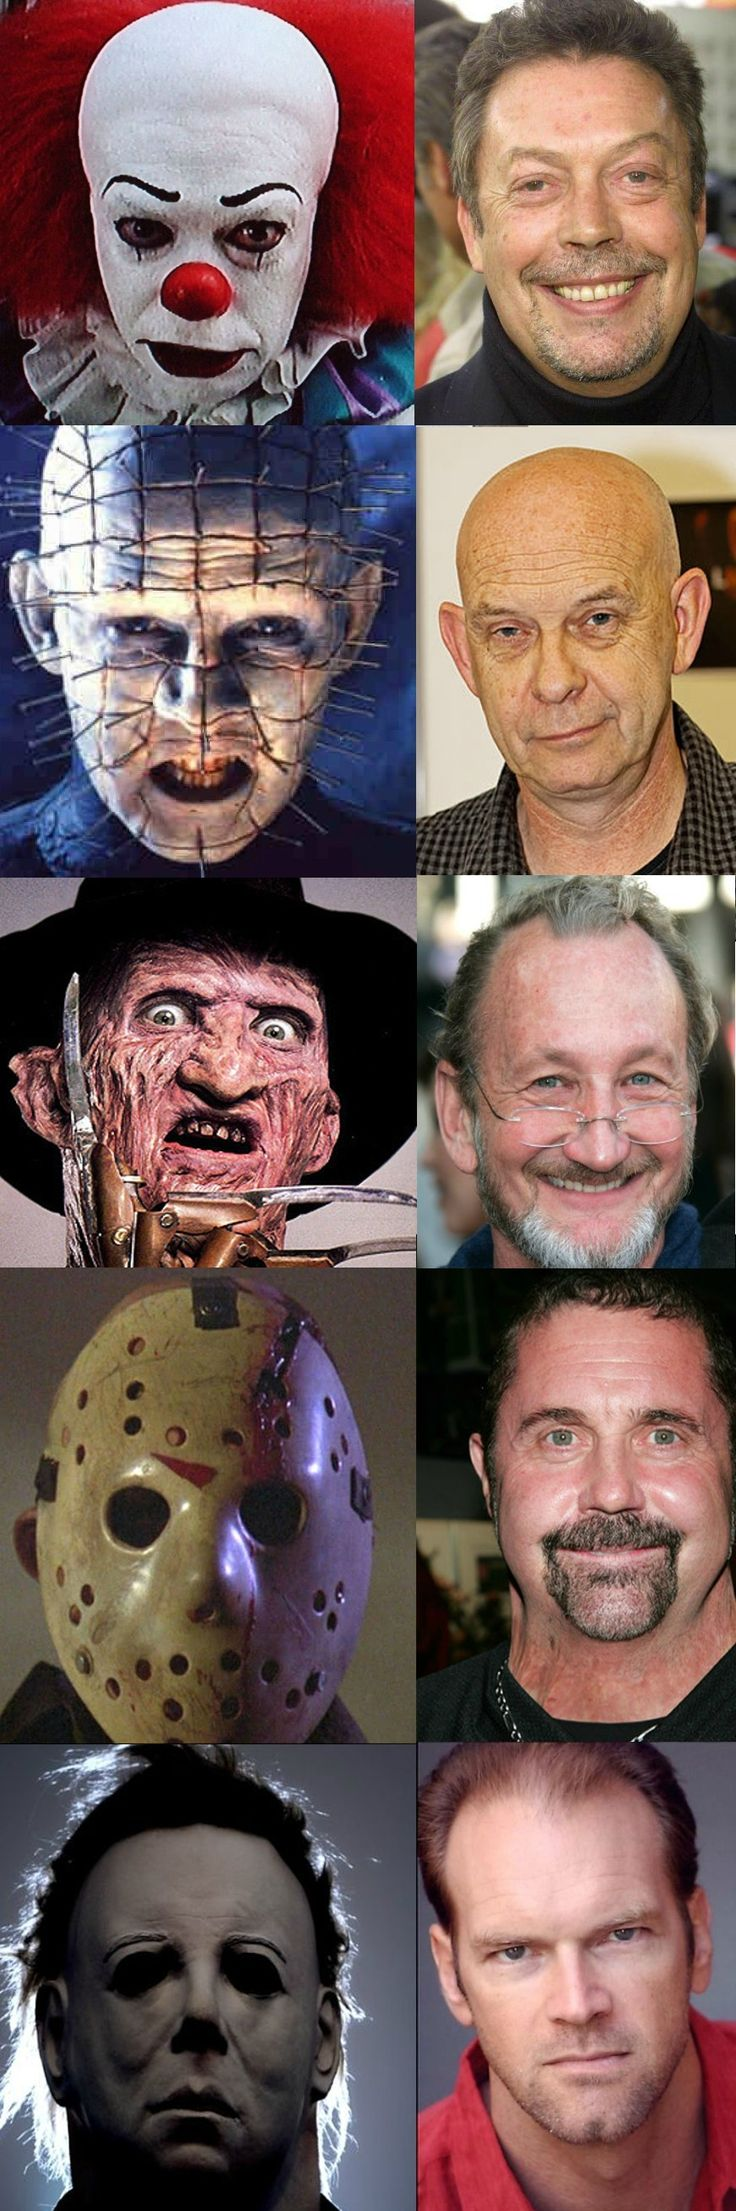 Behind the horror masks. That is not who played the first Michael Myers though. Maybe in part 2.